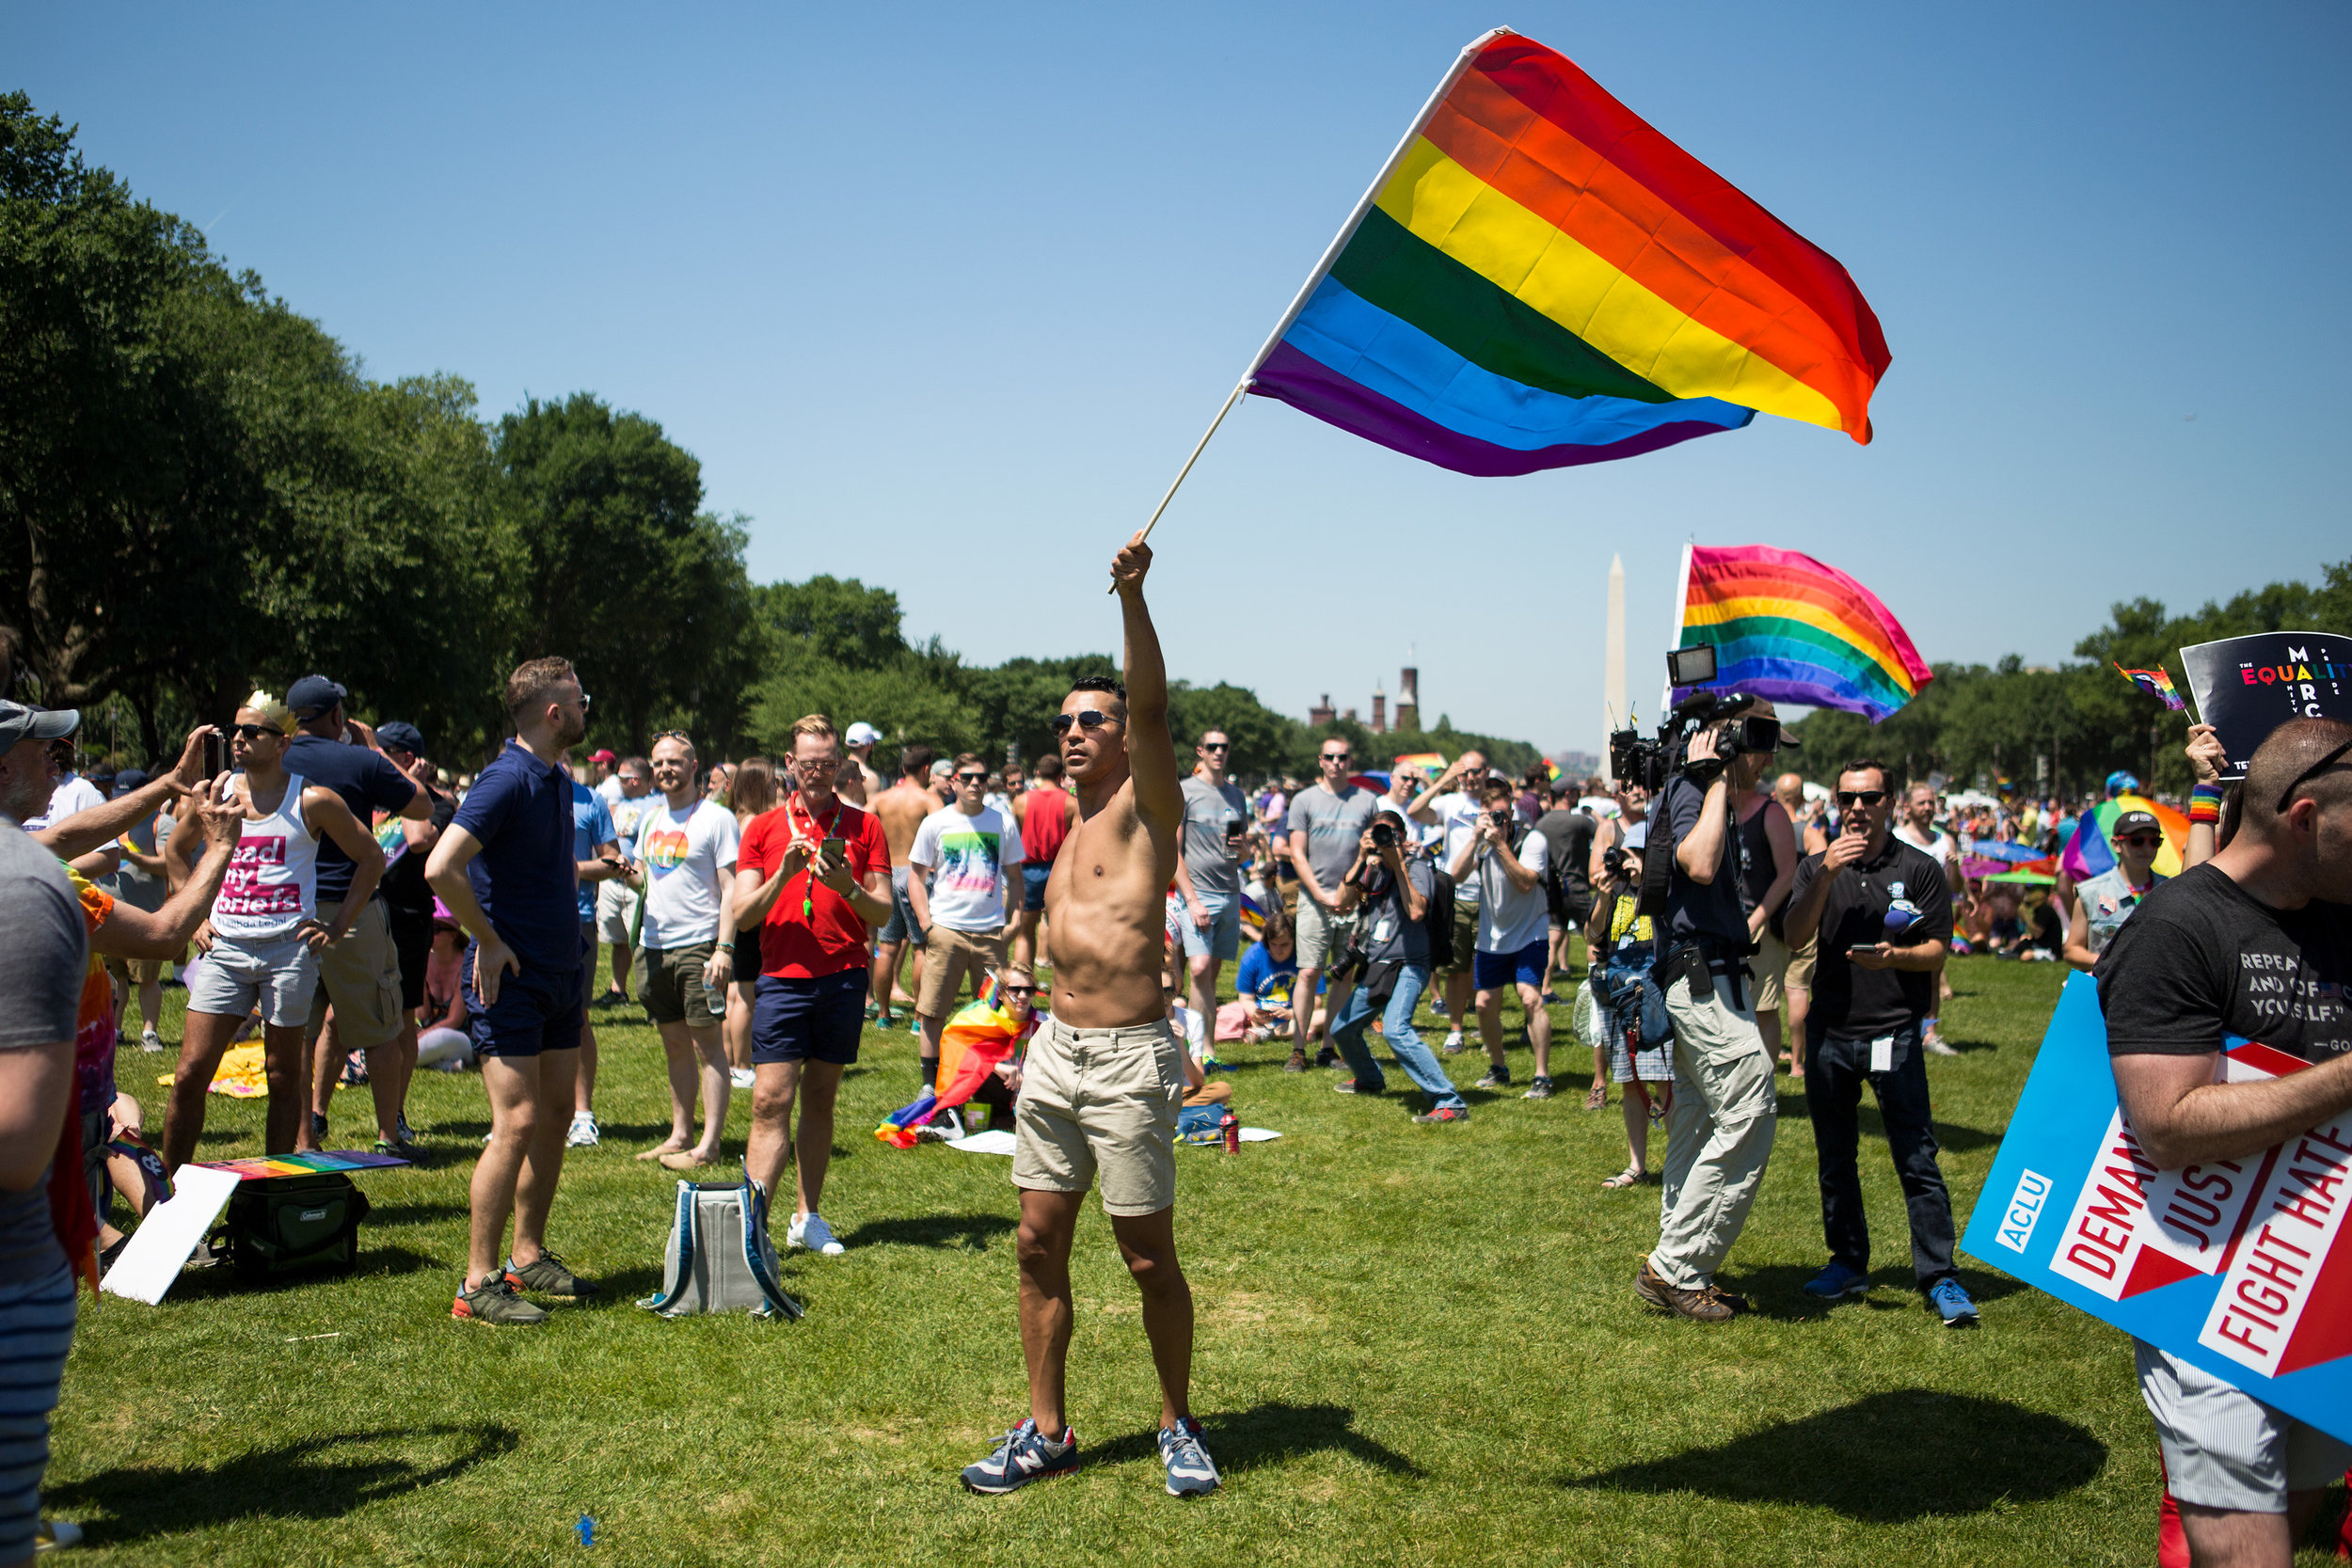 Pride flag in hand, Miguel Perez of Las Vegas, NV, danced on the National Mall during the Equality March in Washington D.C. on Sunday, June 11. (Photo: Liam James Doyle/NPR)